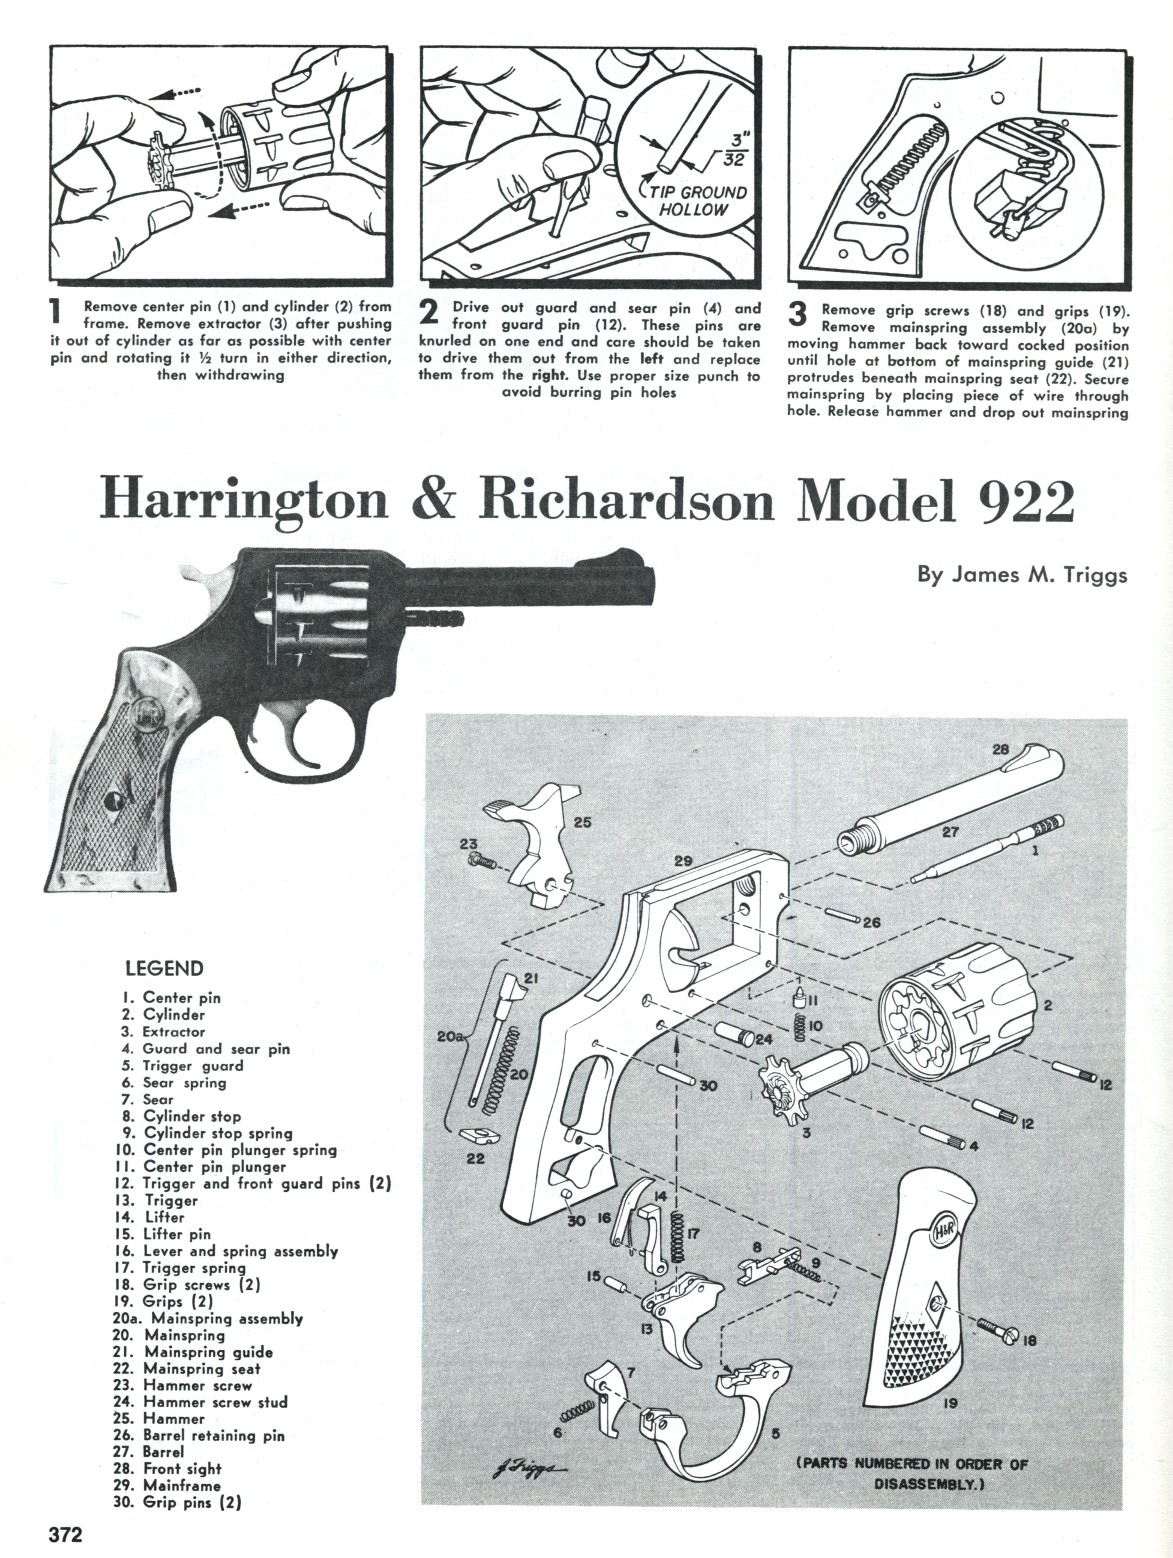 hight resolution of pin revolvers or http maxicon com guns pics h r 922 1a jpg